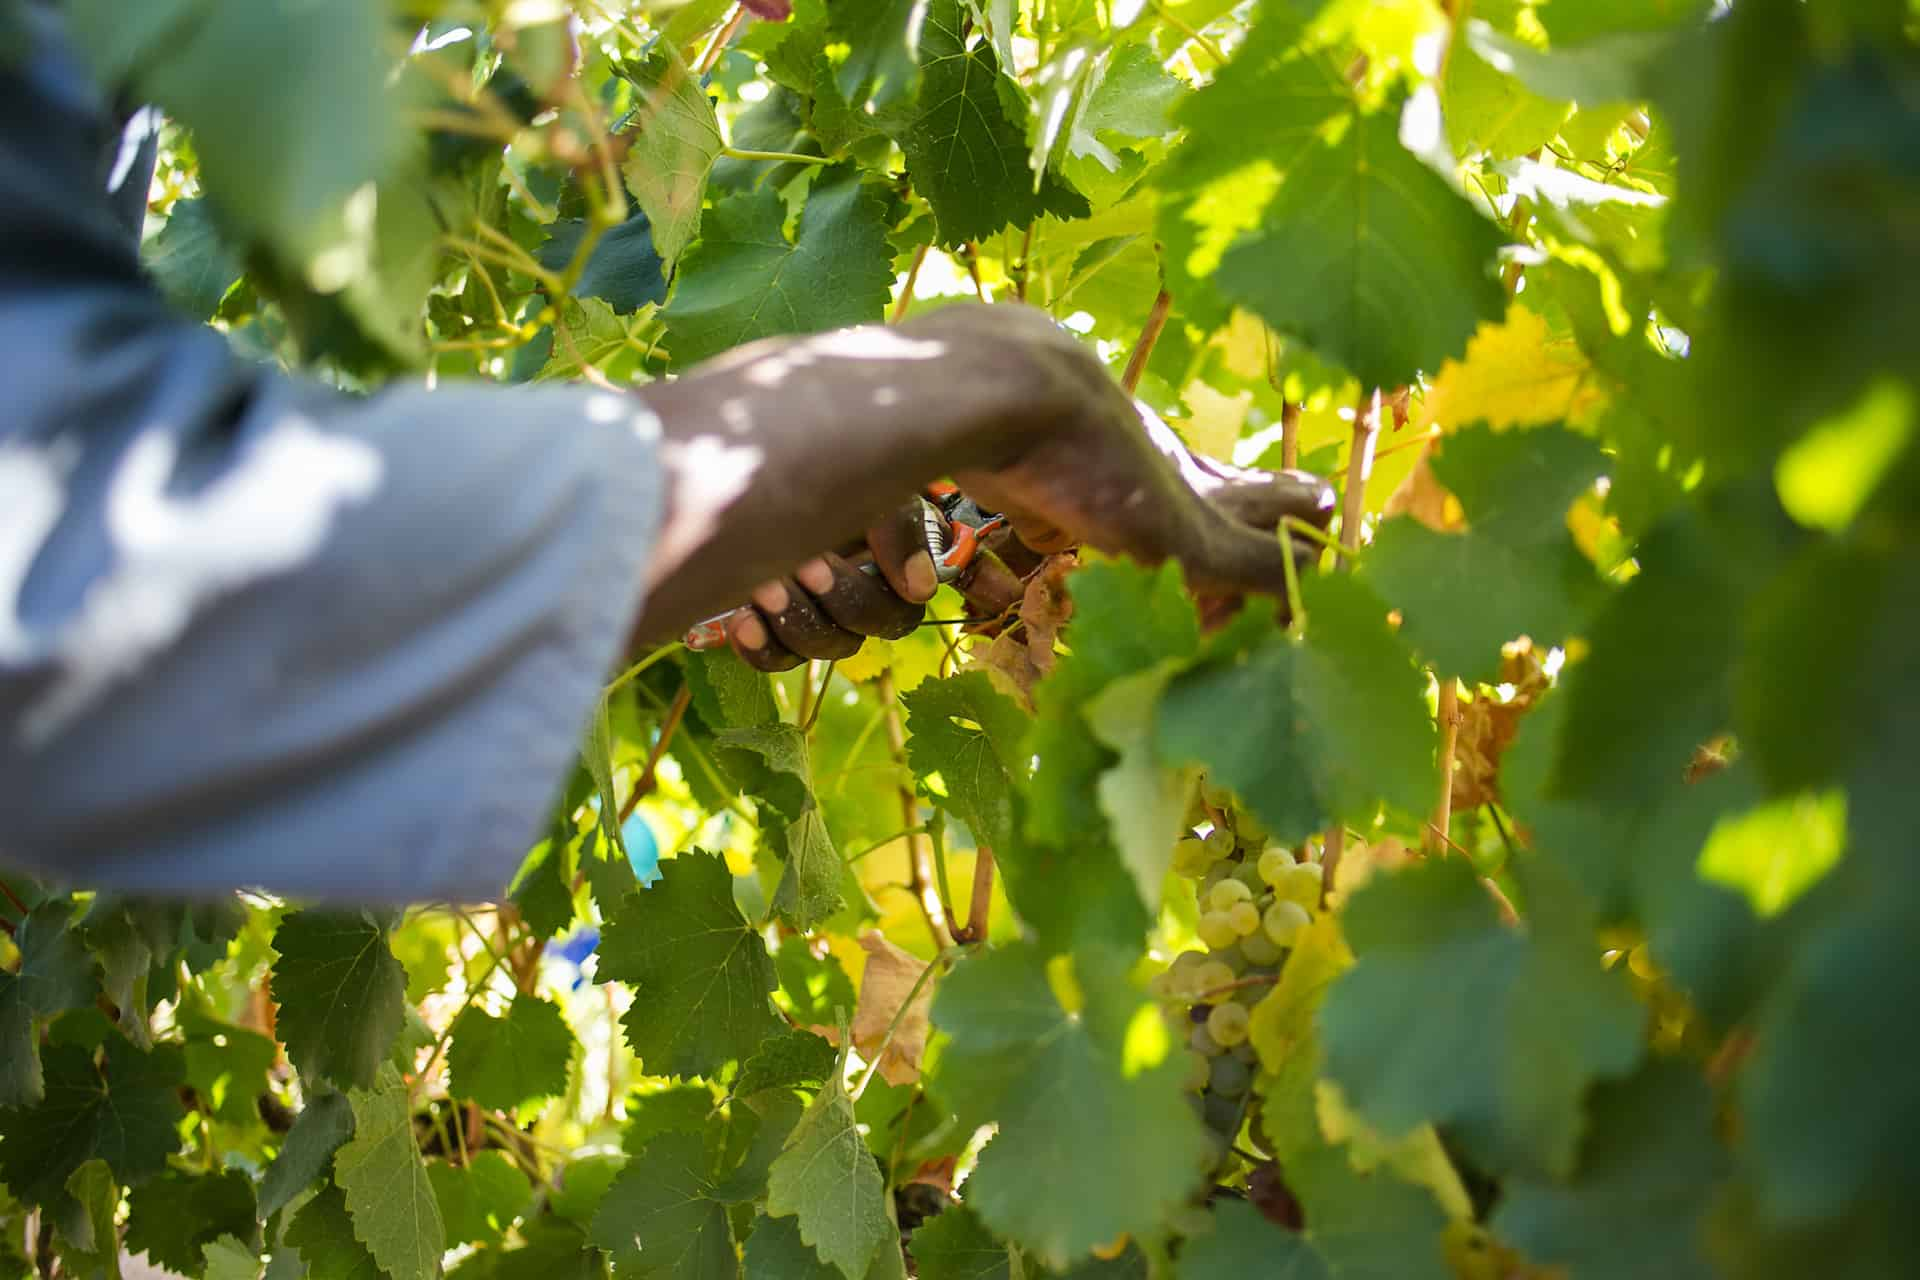 Running Dry: Will Covid-19 Kill South Africa's Wine Industry? photo